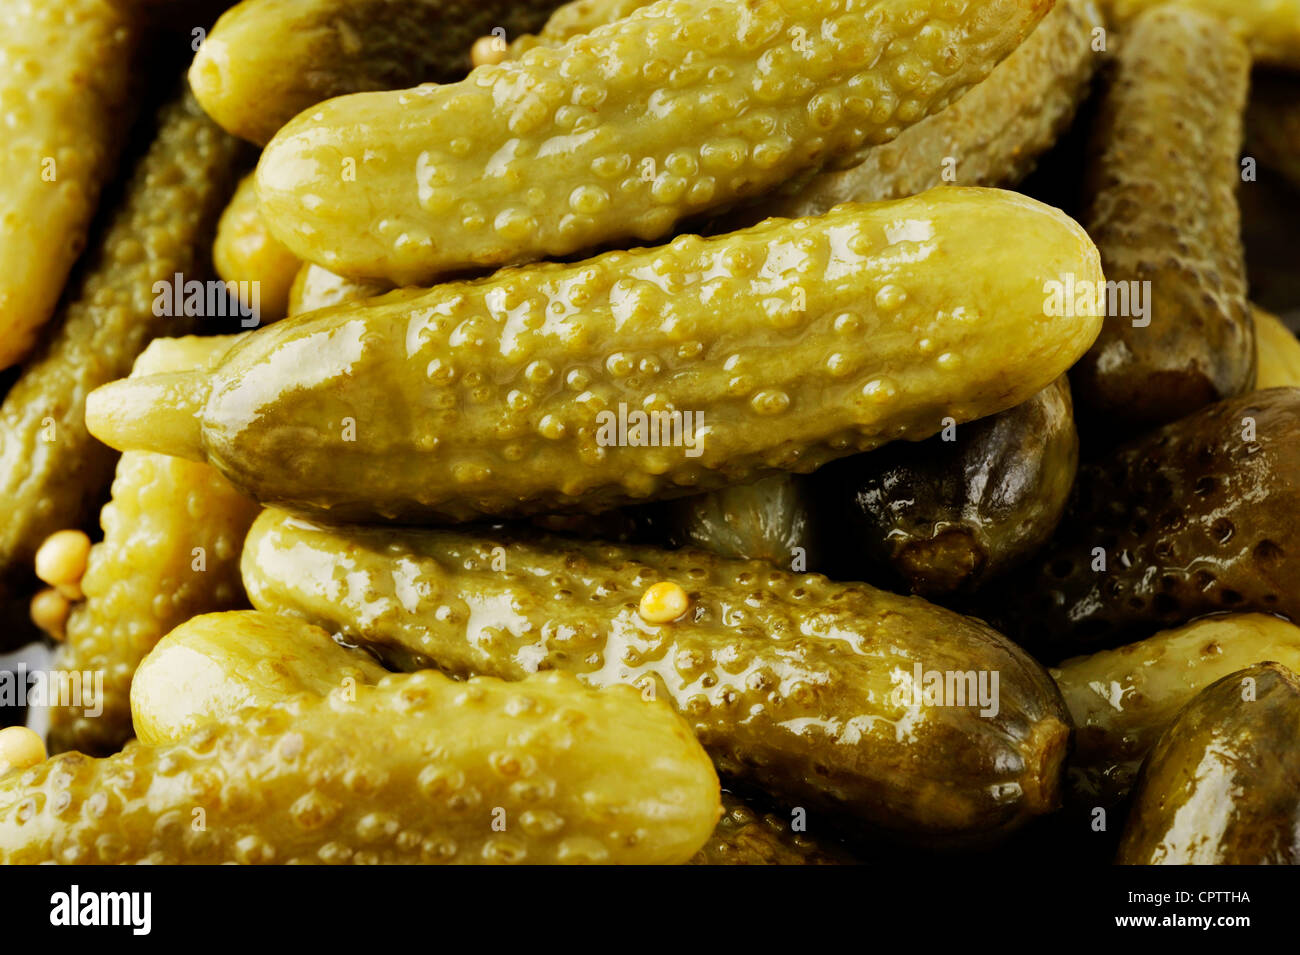 pickle cucumber - Stock Image